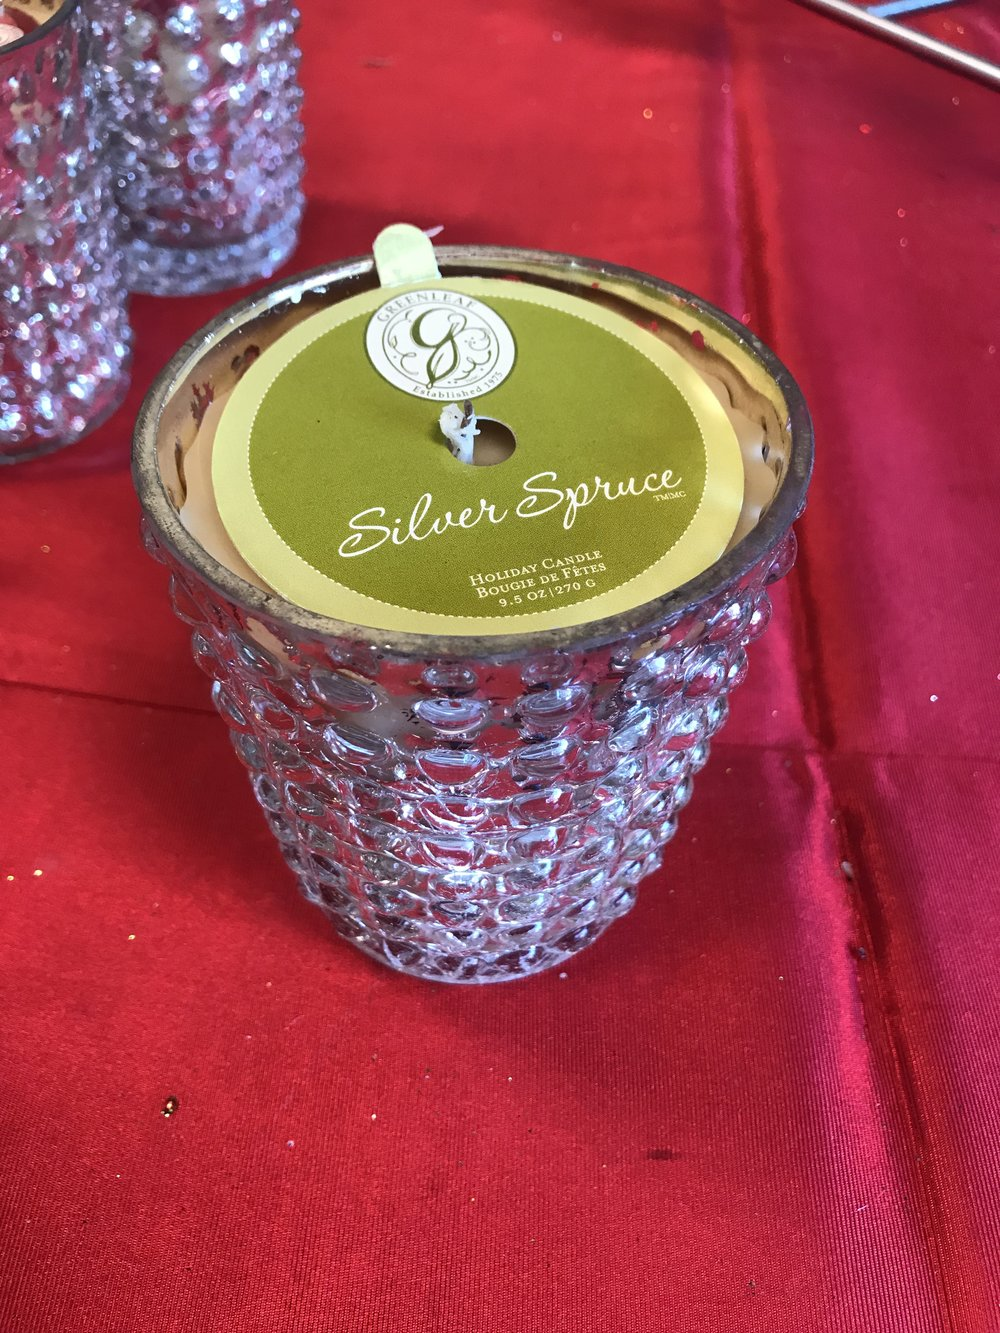 The perfect scent for Christmas! Find great seasonal candles at Deemers Flowers this holiday!